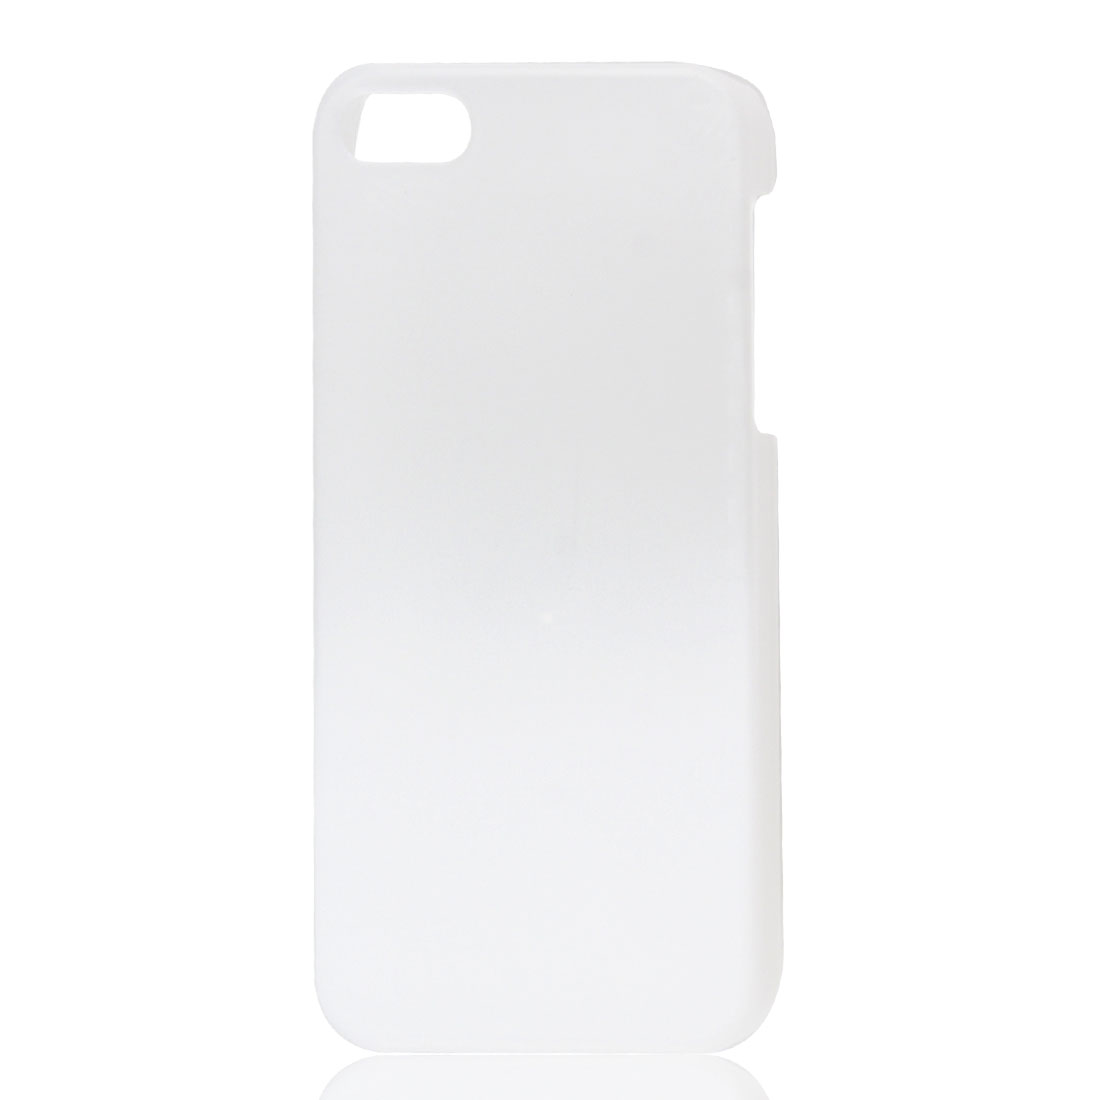 Gradient White Semi Transparent Hard Plastic Protective Case Cover for iPhone 5 5G